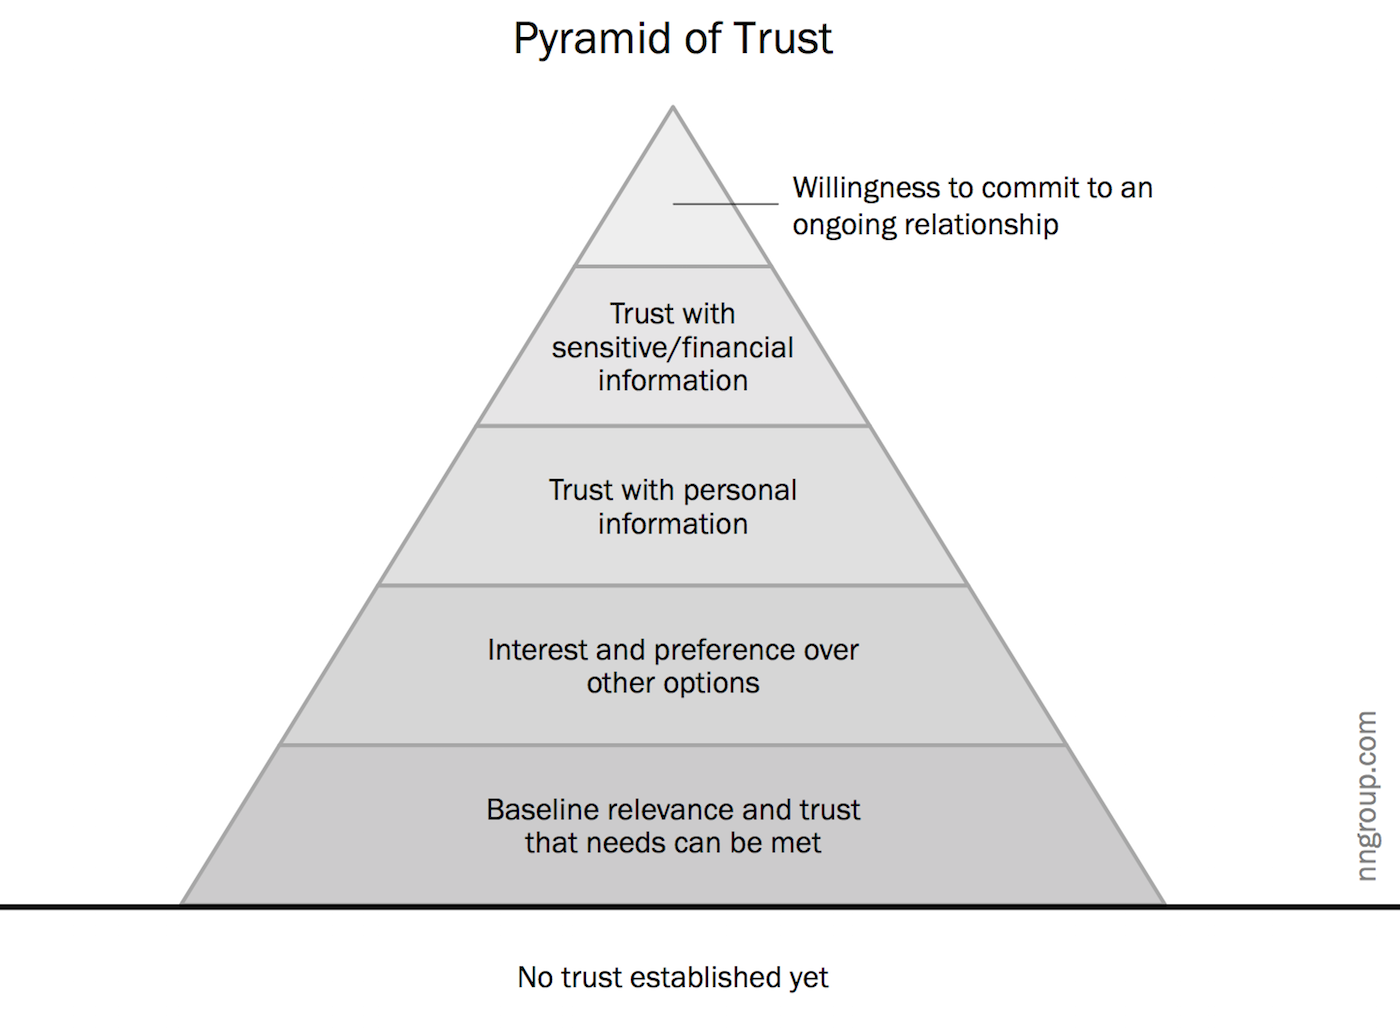 Five experiential levels of commitment shown on the pyramid of trust